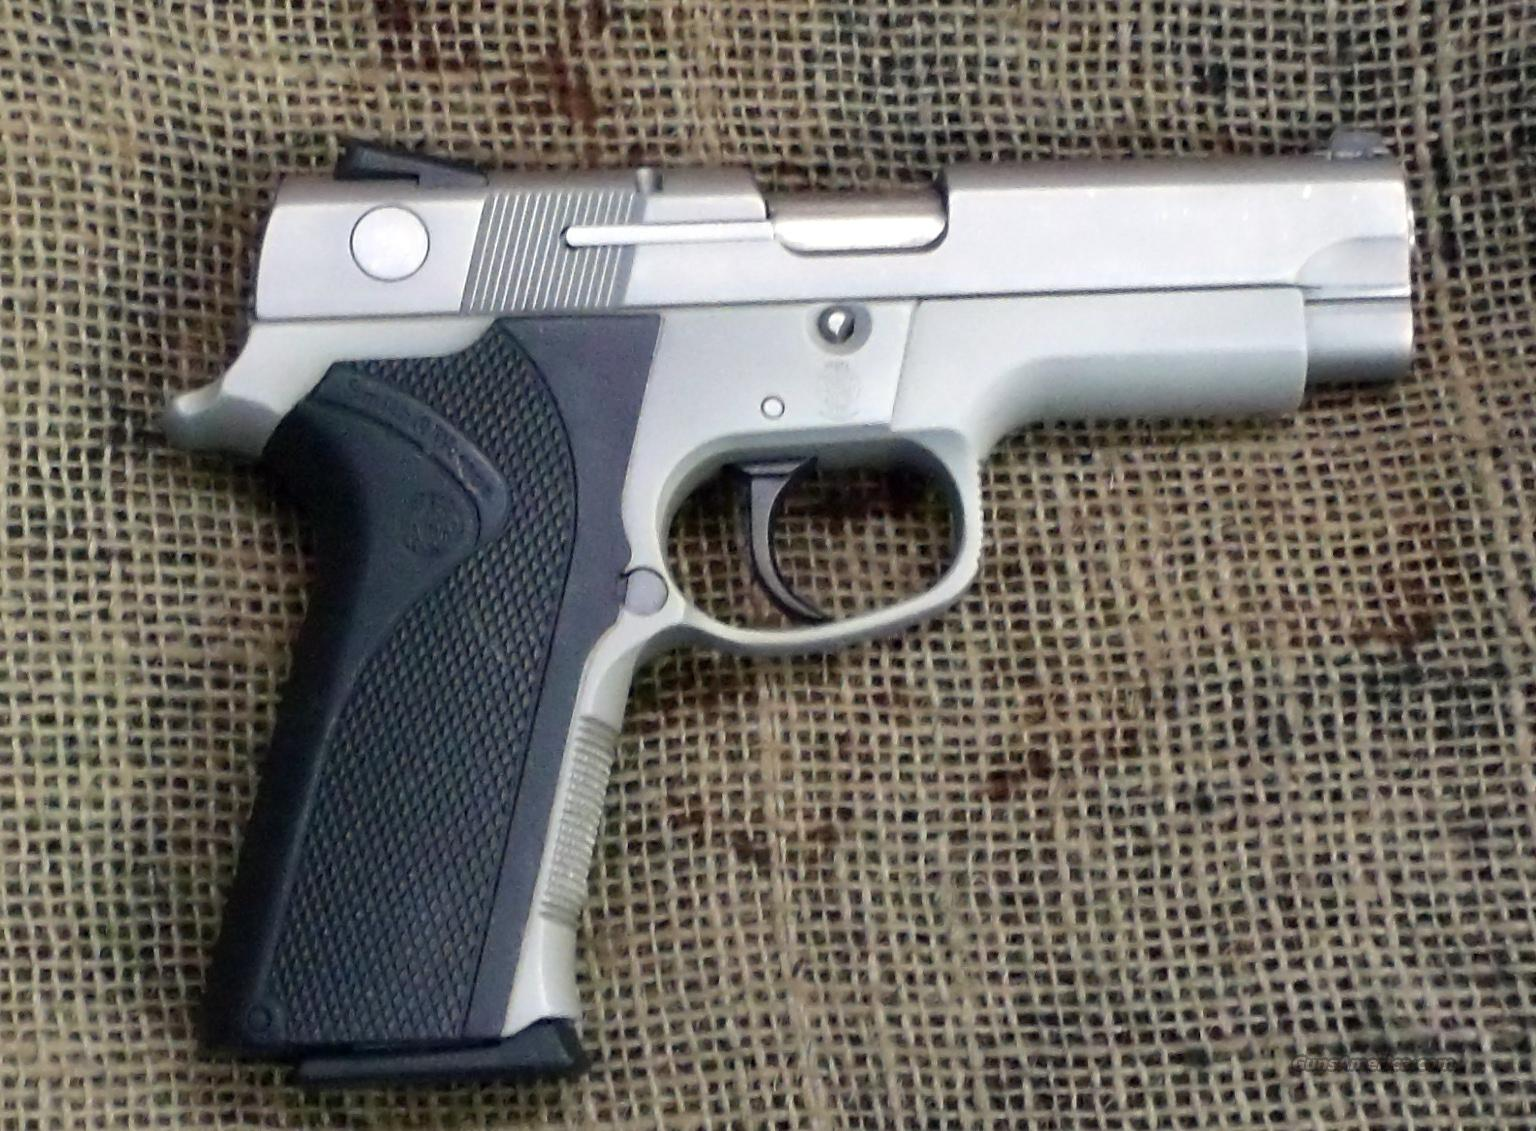 SMITH & WESSON  Model 4043 Pistol, 40S&W Cal.  Guns > Pistols > Smith & Wesson Pistols - Autos > Alloy Frame